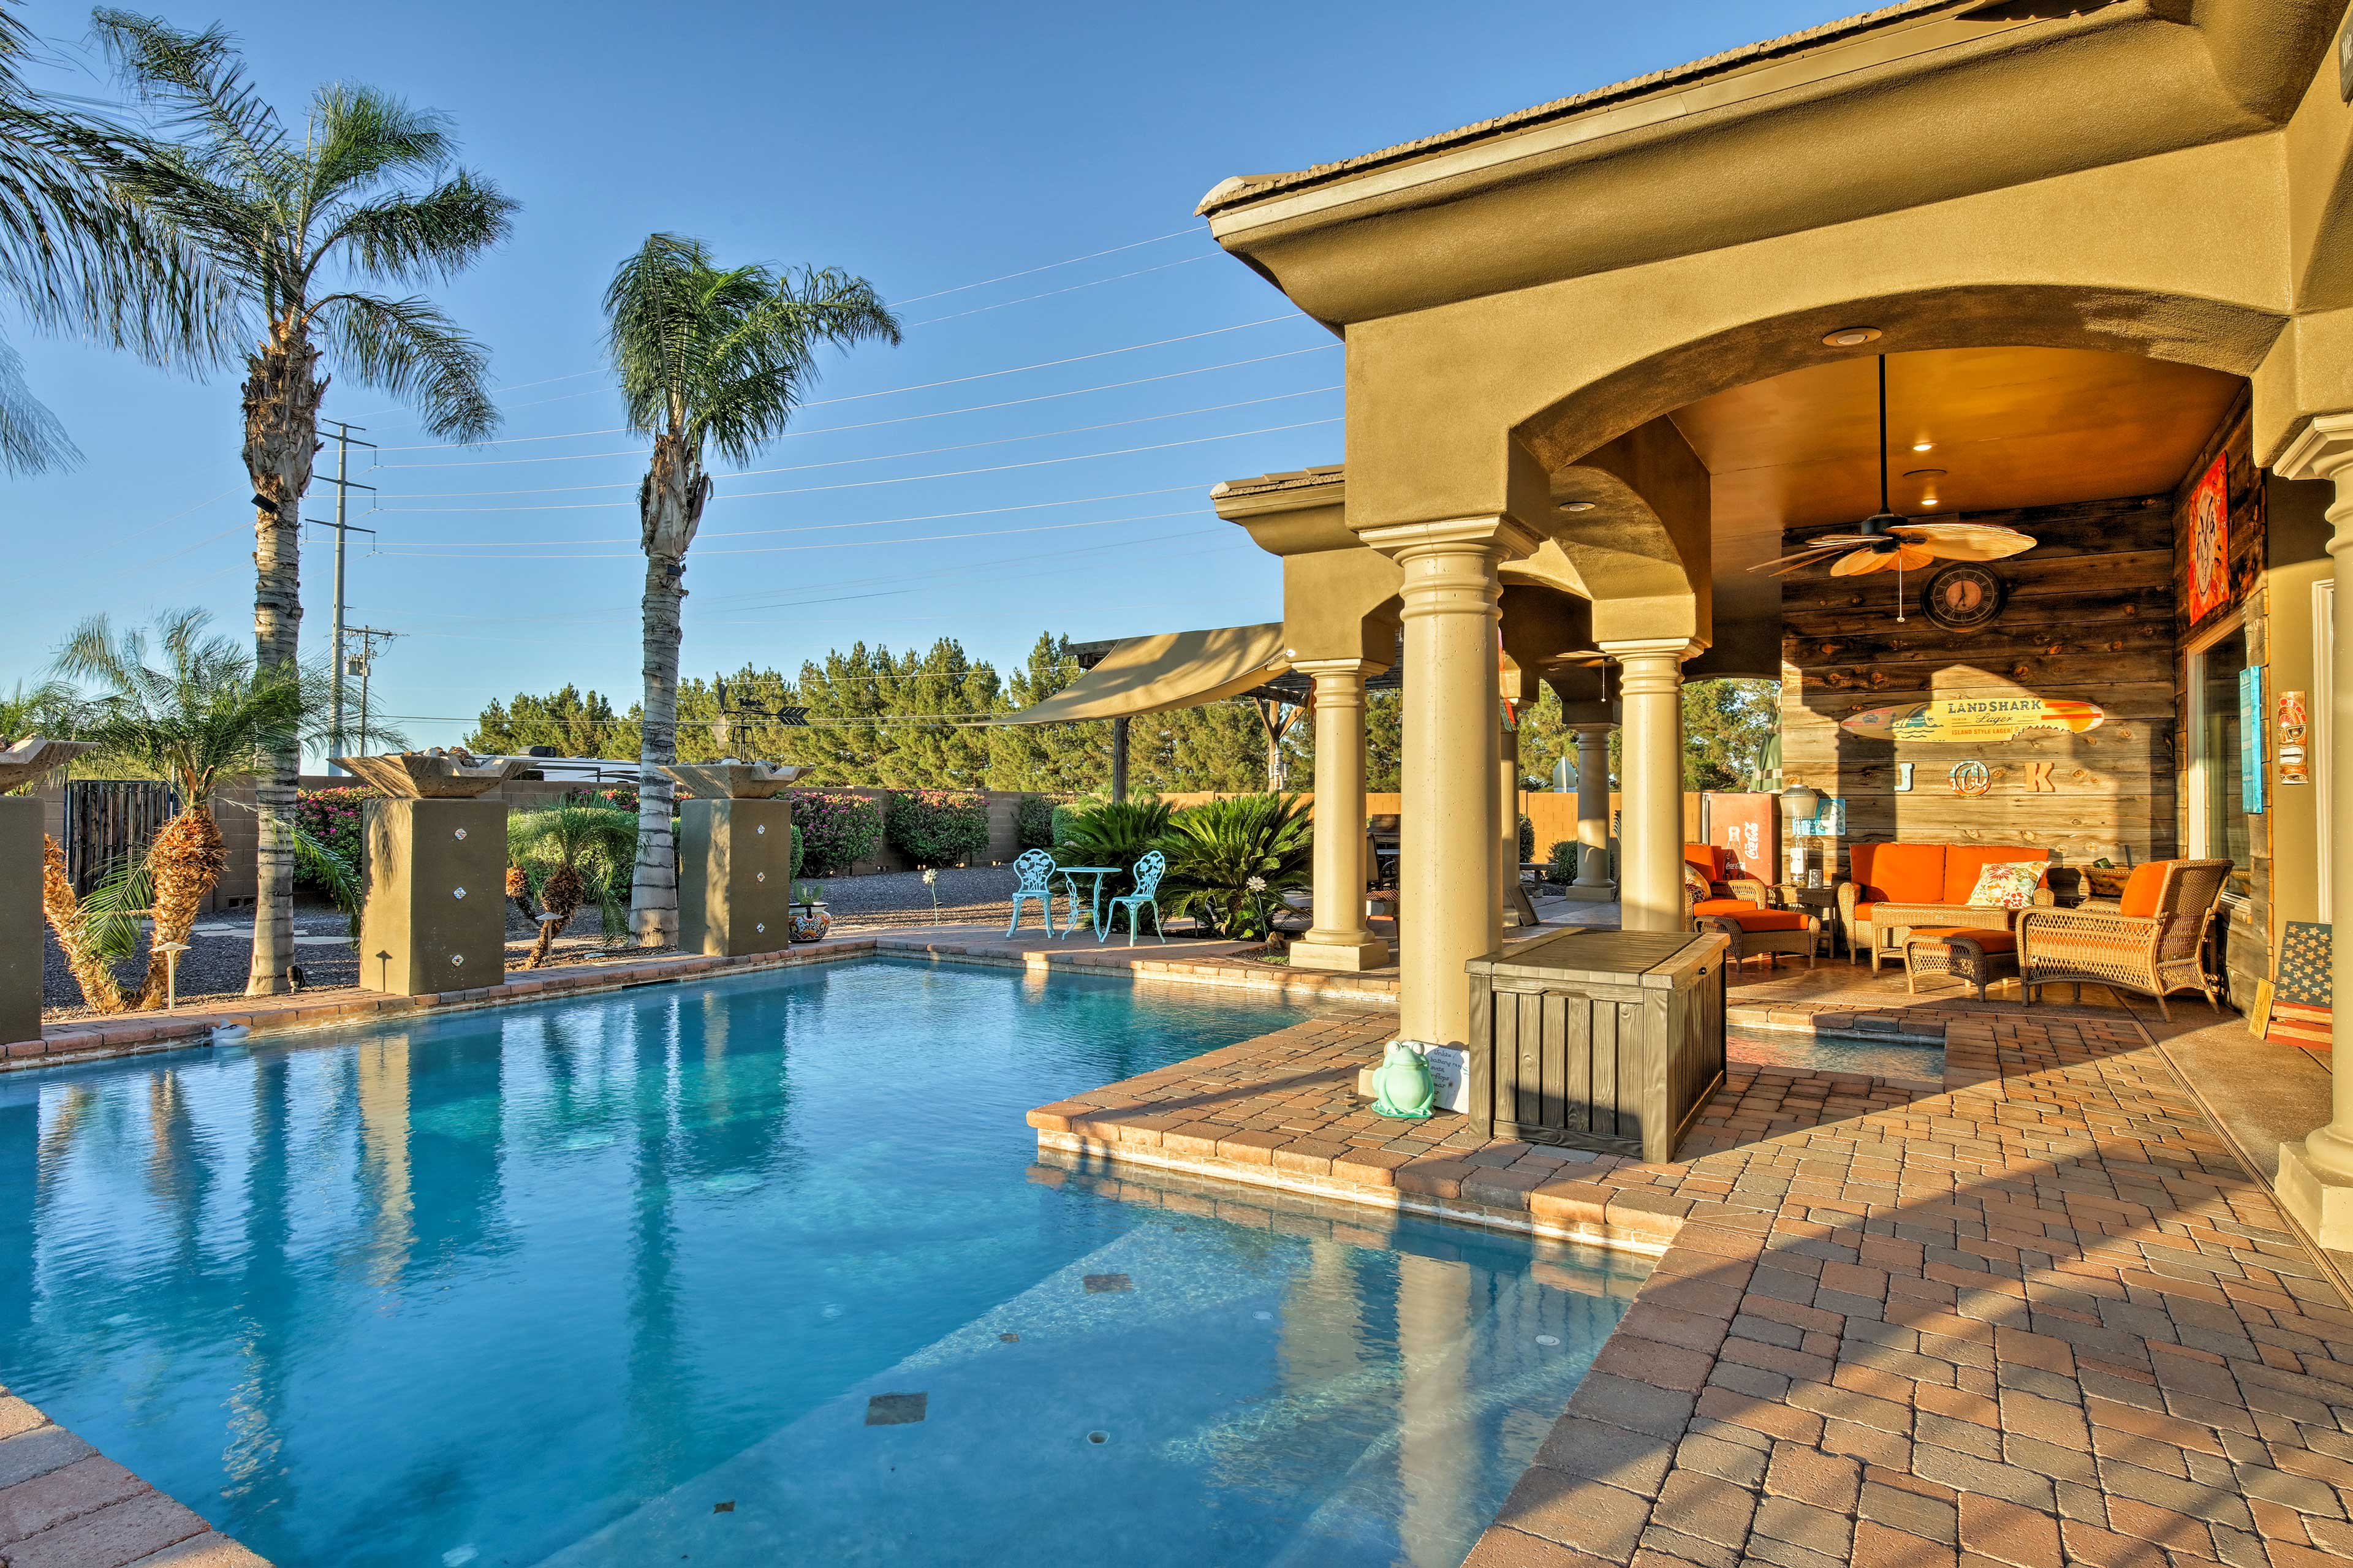 Cool off with a dip in the pool then unwind in the hot tub.